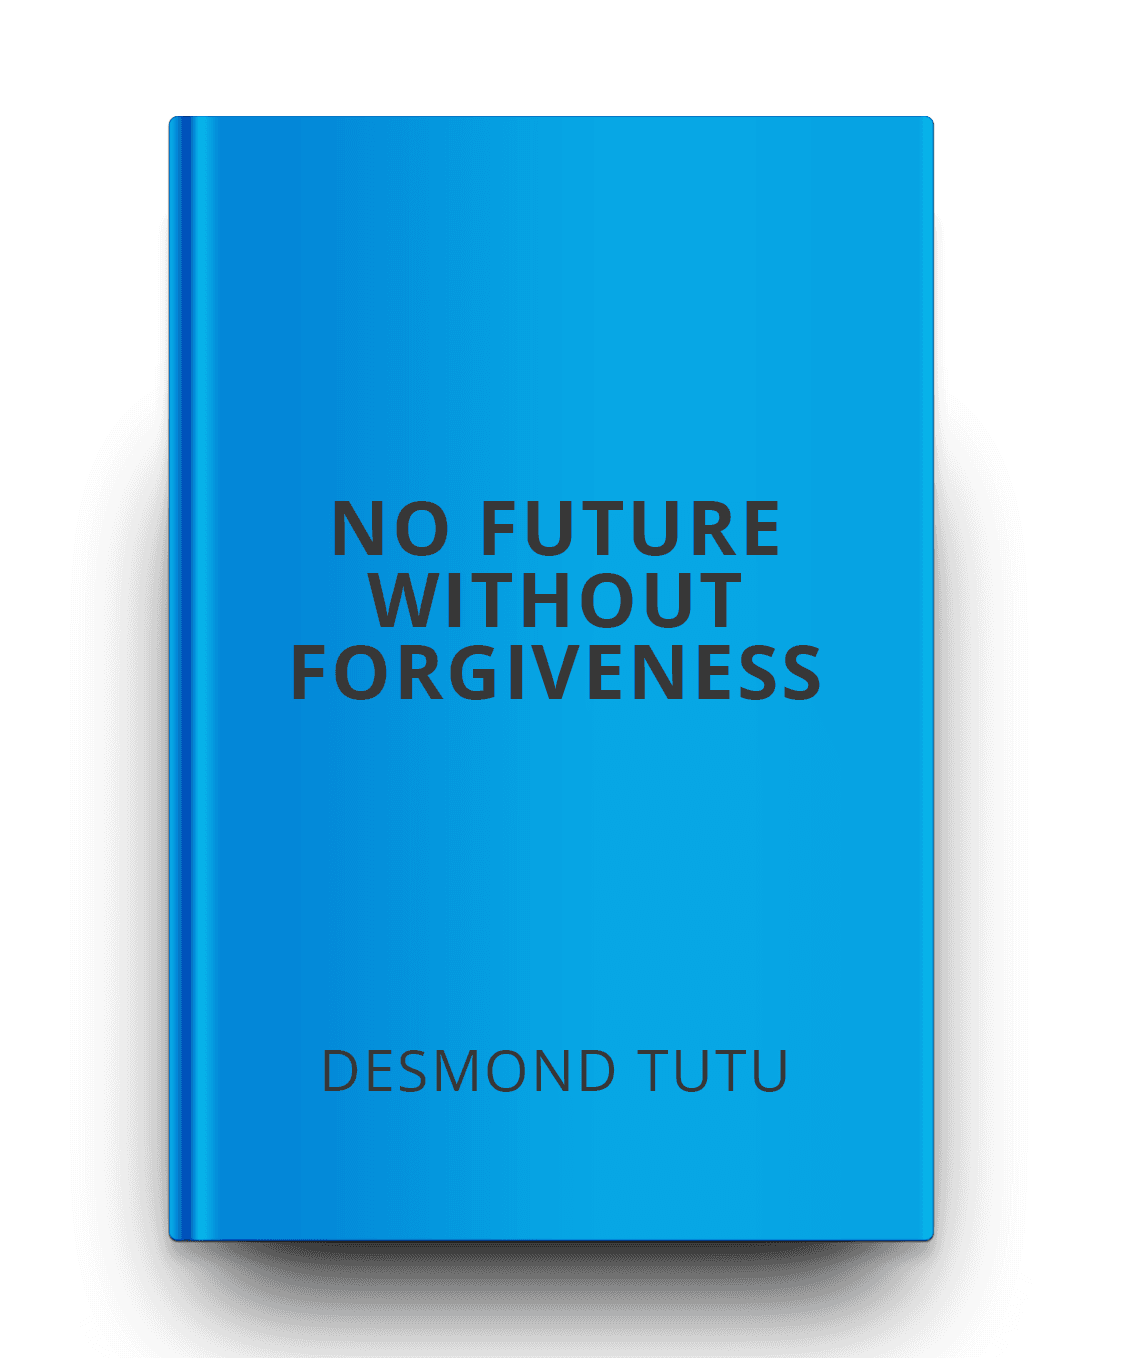 no-future-without-forgiveness